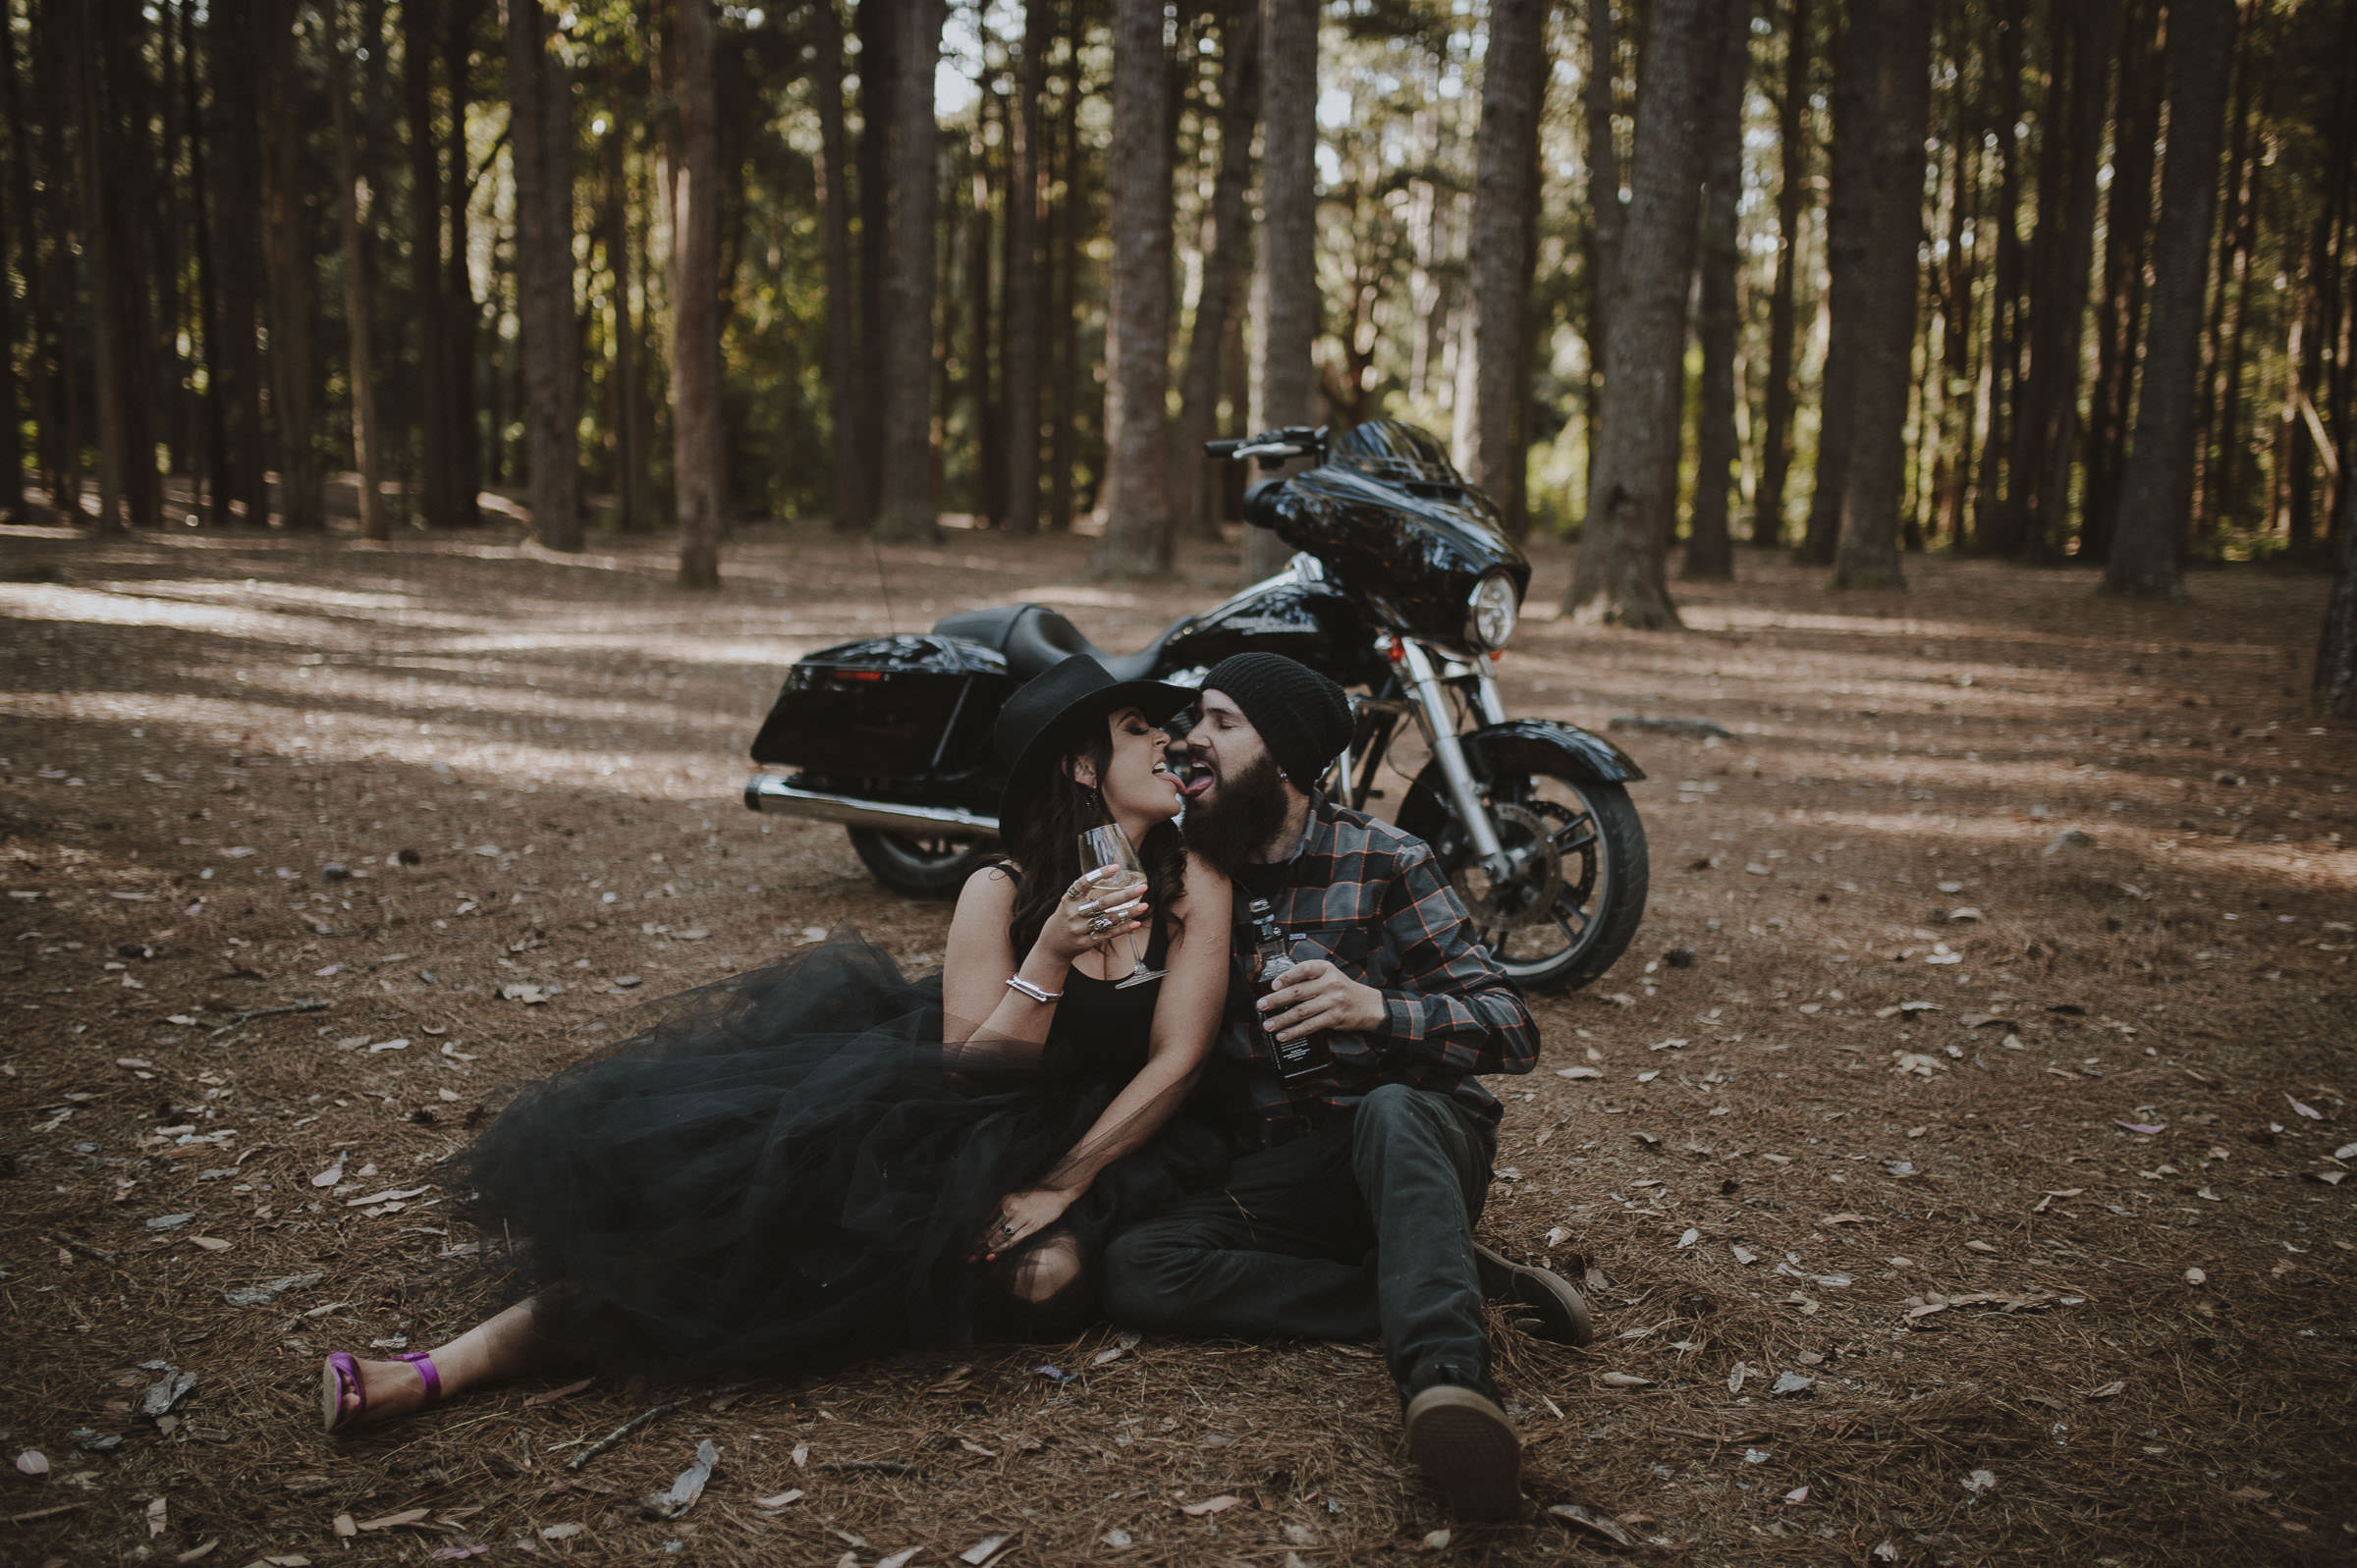 Madeline_Jamie_Watagens_Pine_Forest_Engagement_Shoot_Blog-12.jpg